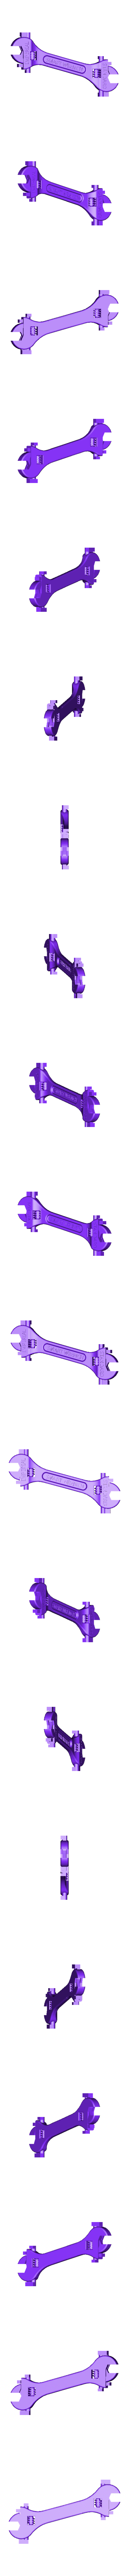 SmartWrench-Alt.stl Download free STL file Fully assembled 3D printable SMART wrench • 3D printer design, bLiTzJoN